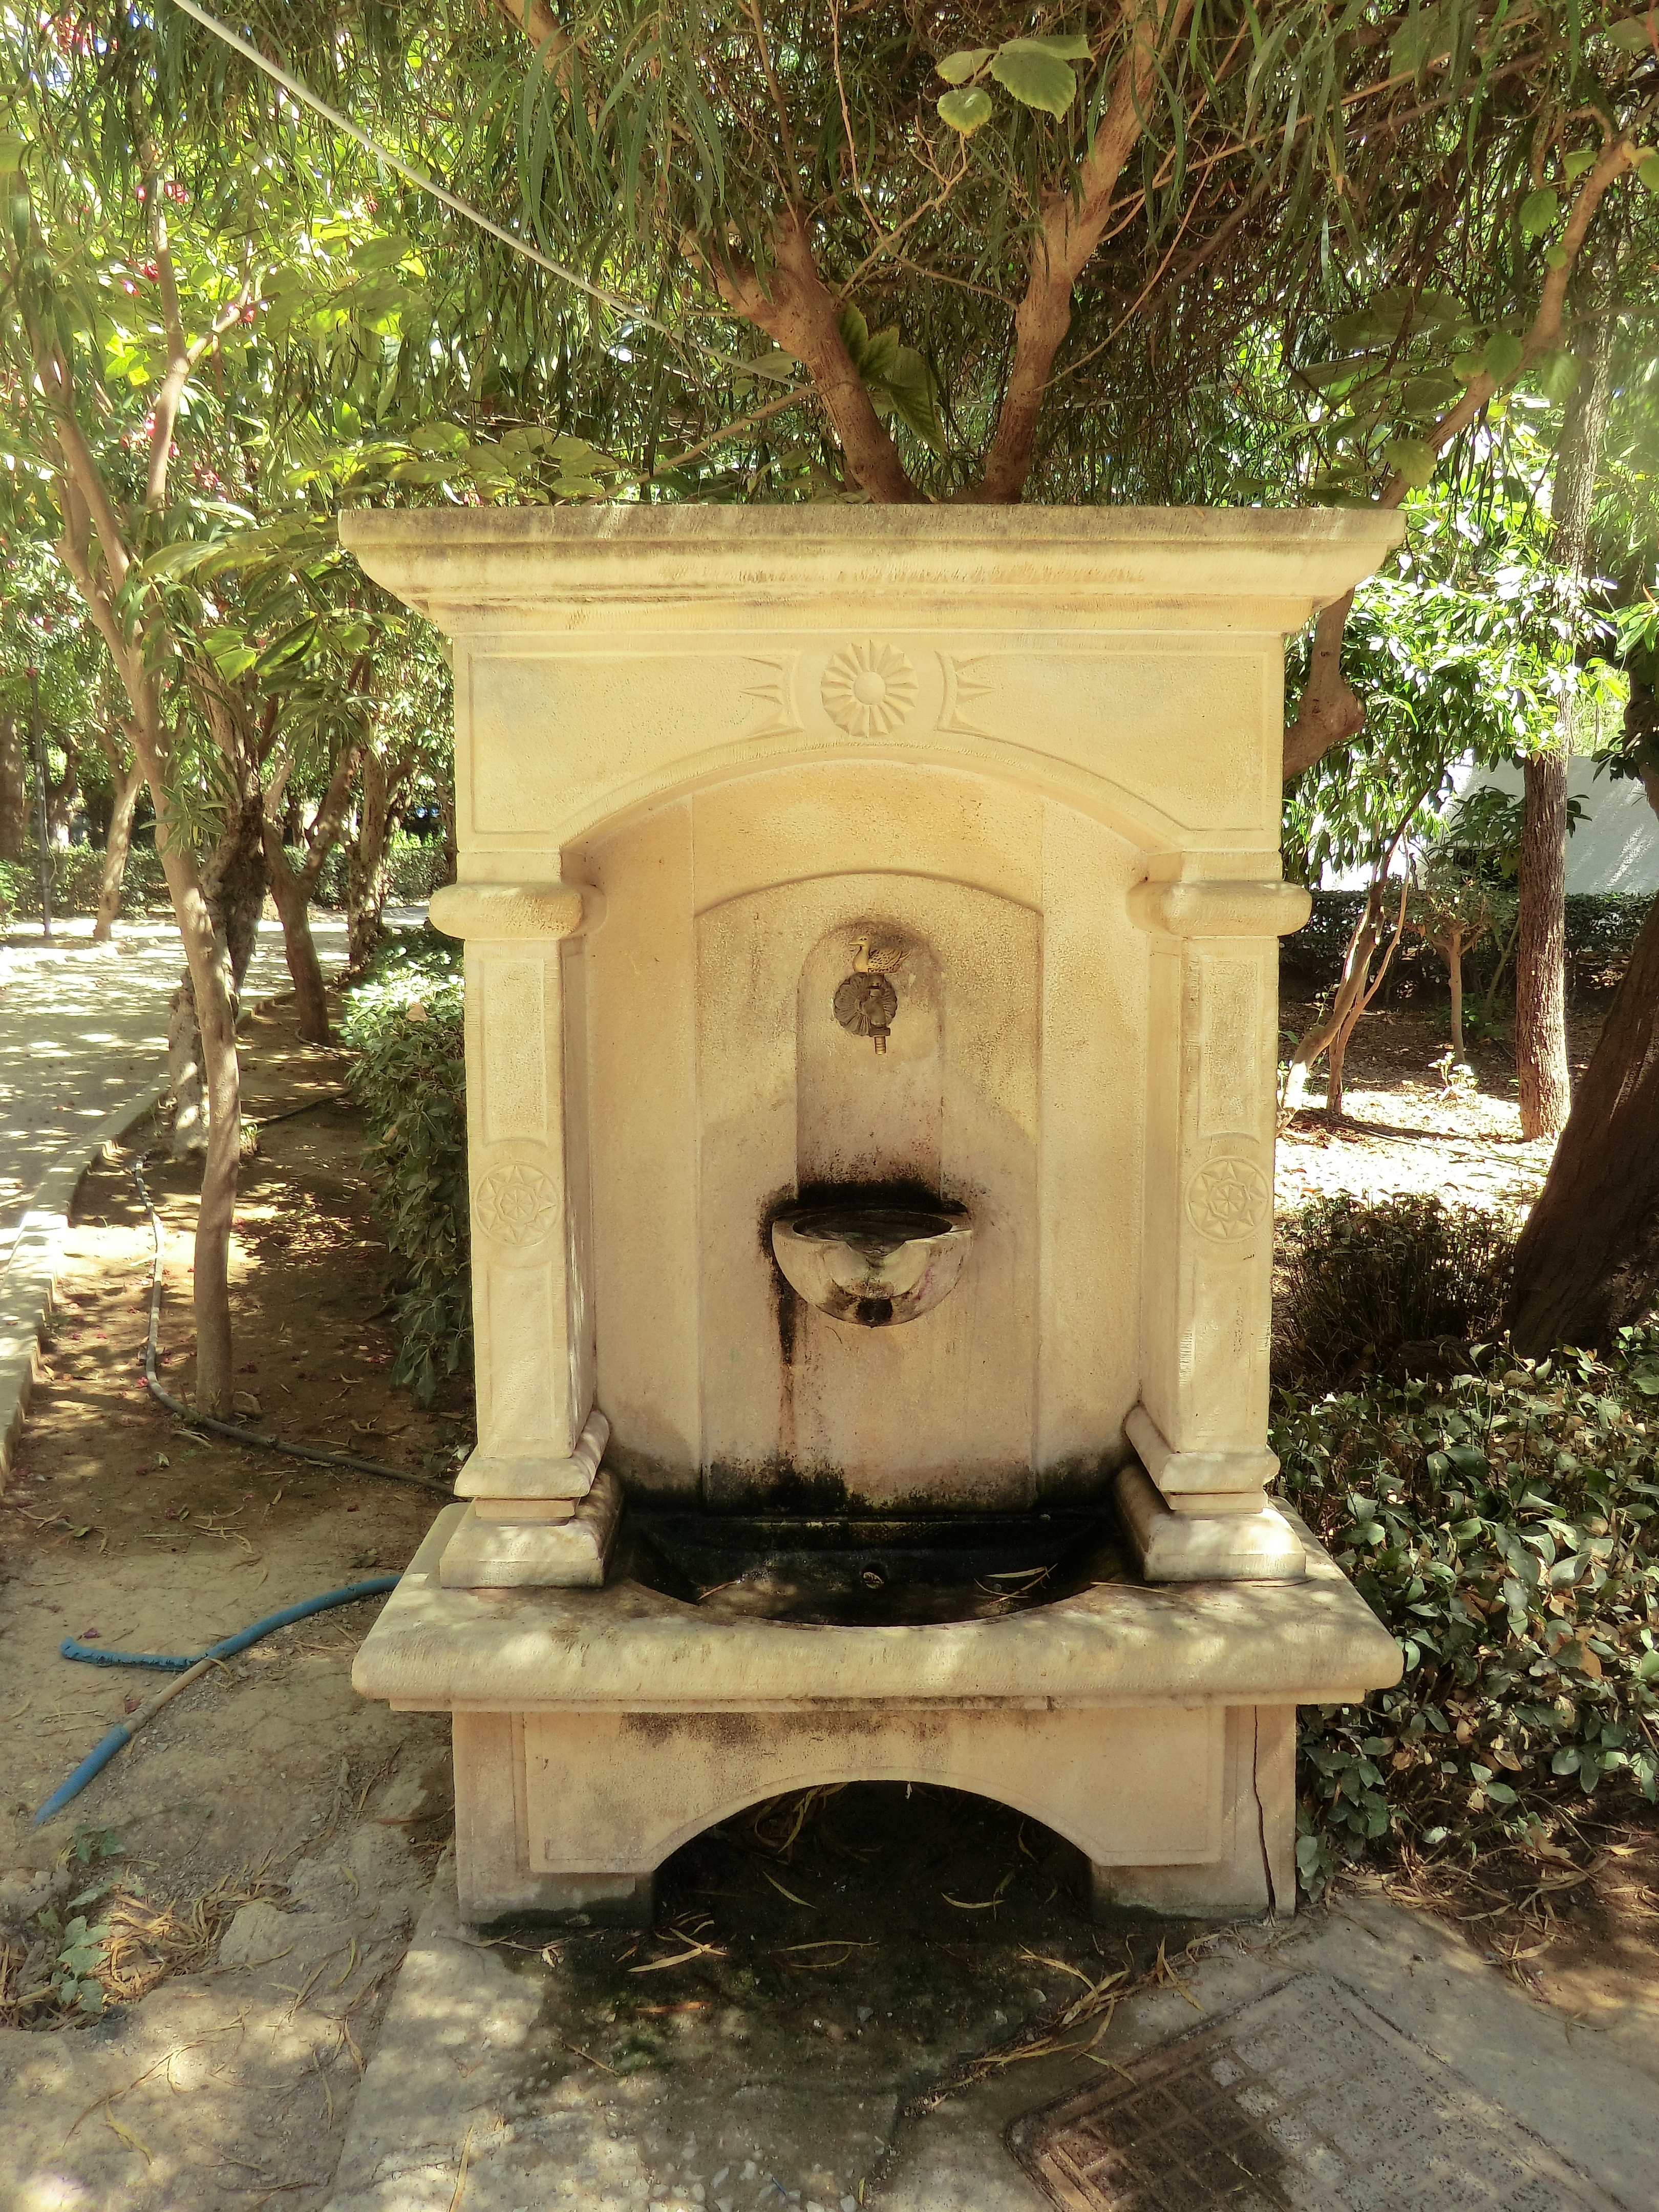 file fontaine jardin municipal de r thymnon jpg wikimedia commons. Black Bedroom Furniture Sets. Home Design Ideas